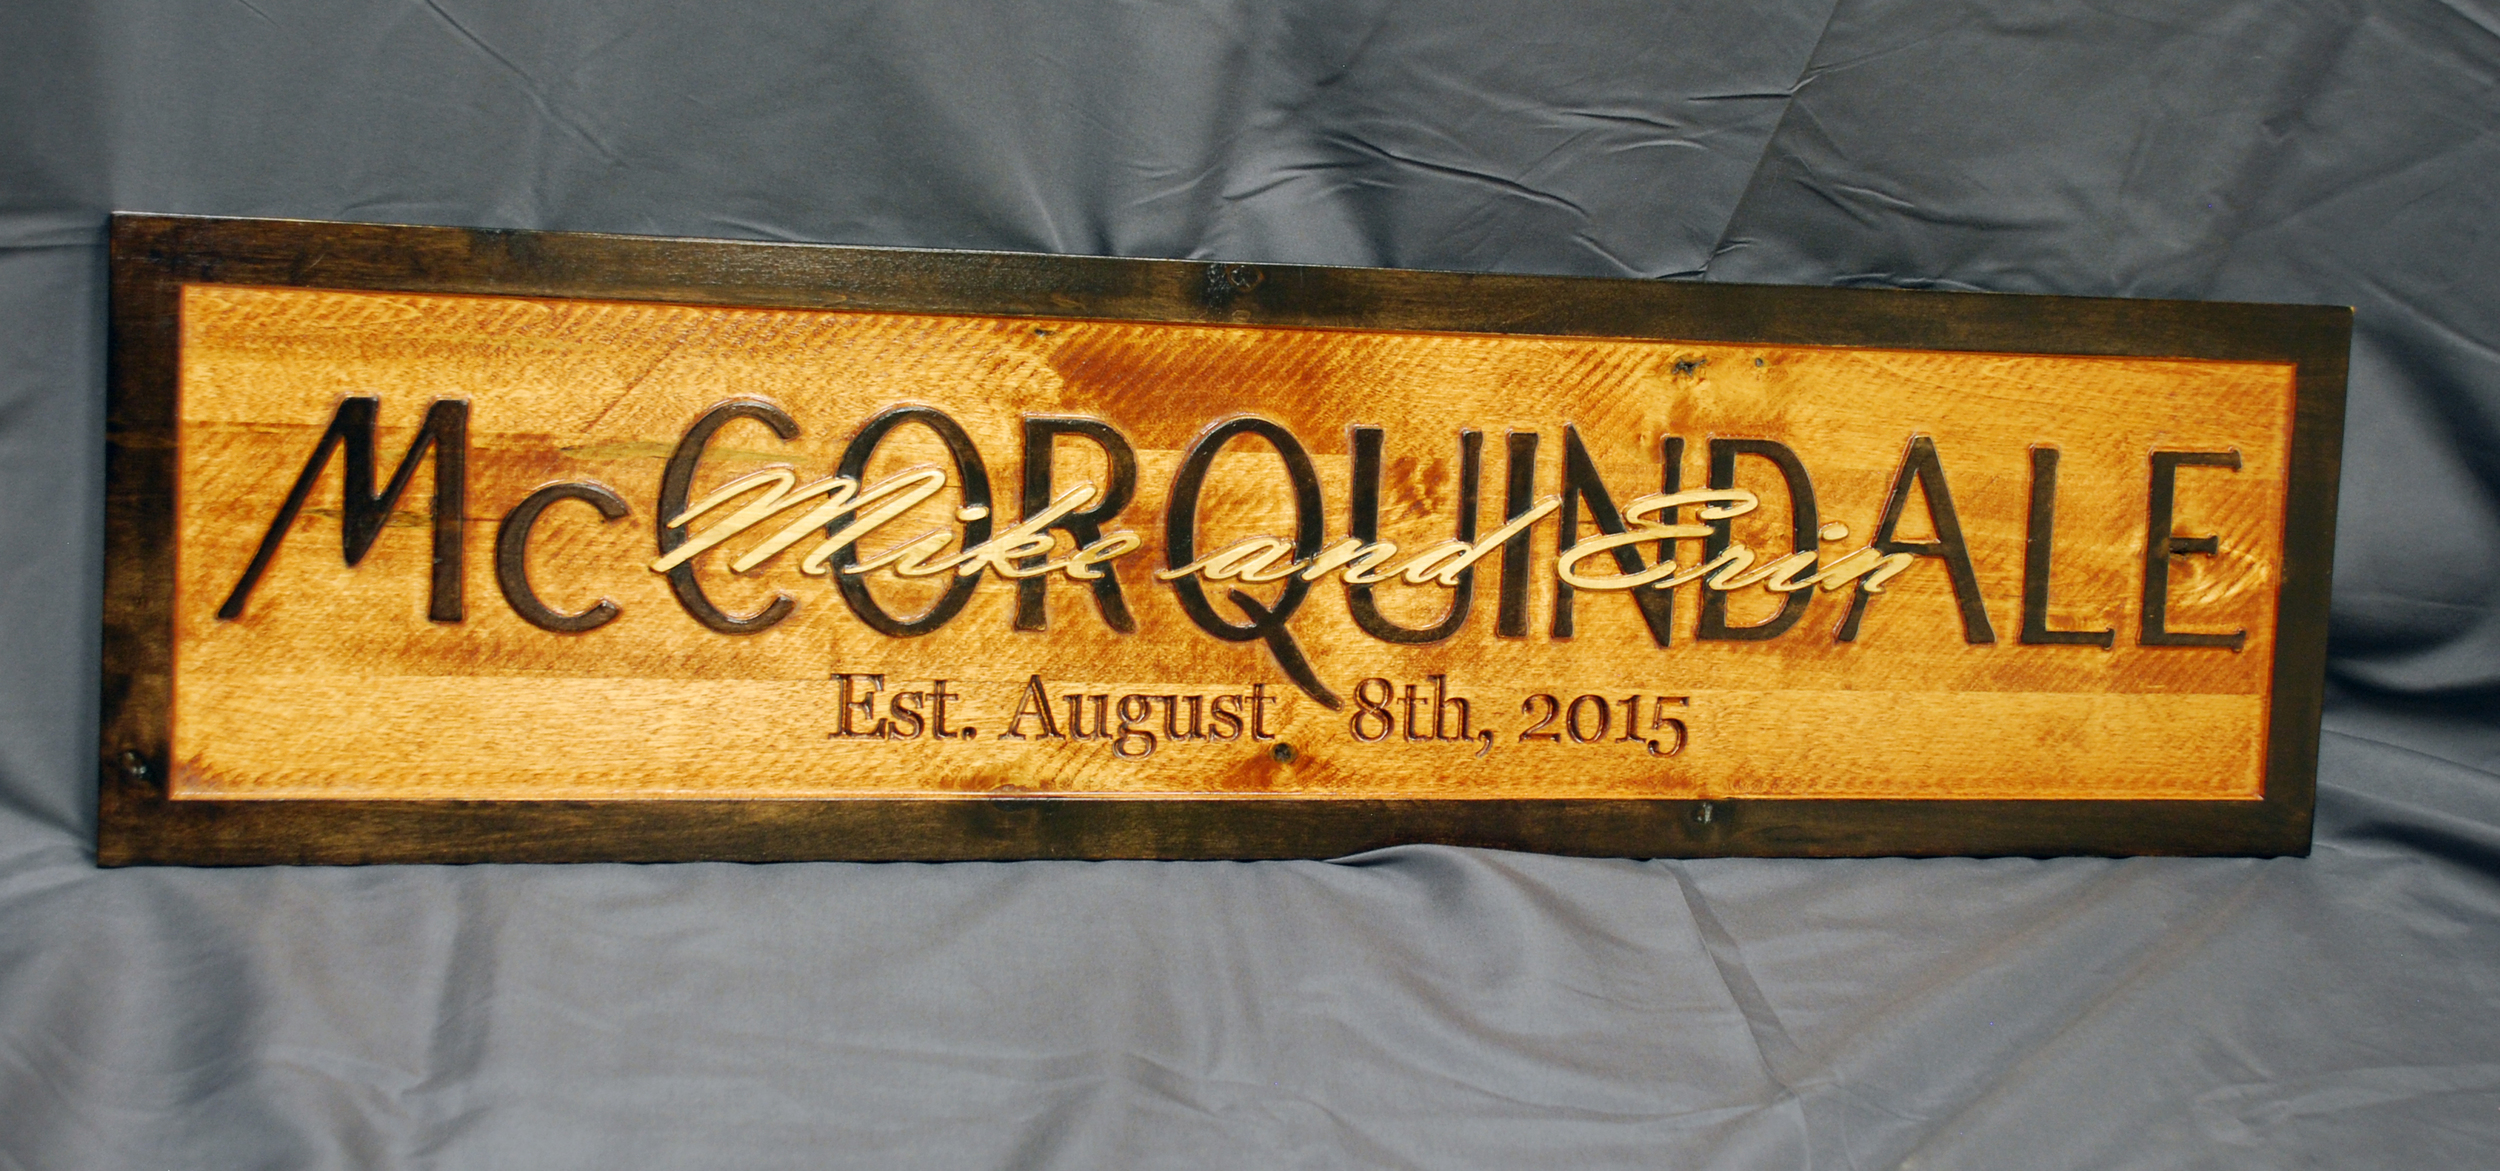 This wedding gift style sign is often referred to as a 'stacked text' sign. Starting with a slab of laminated birch, the lettering was cut out using the pocketing technique. The date lettering was cut using the V-carve technique. After the sign was completed, it was finished using a combination of colored stains applied by hand.